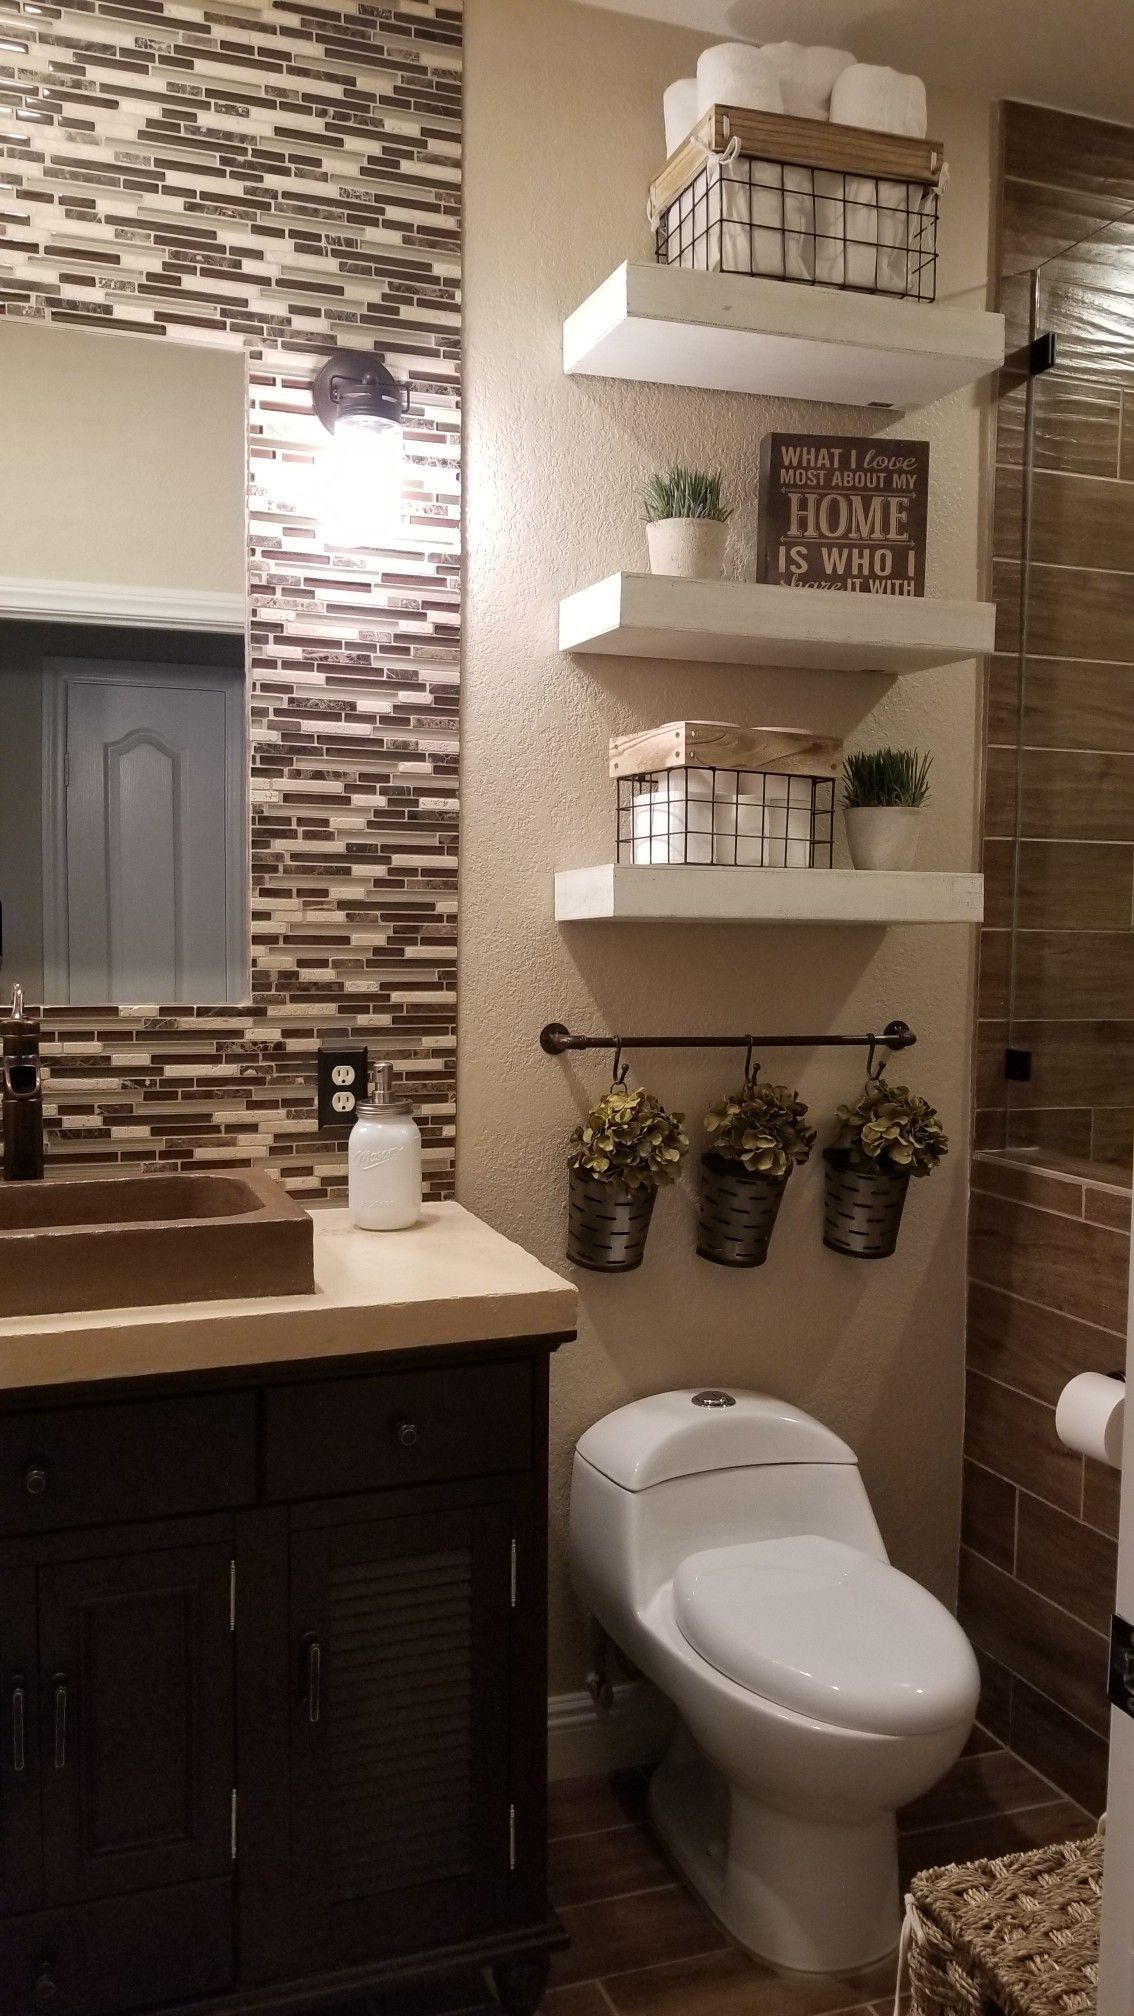 21 Bathroom Remodel Ideas The Latest Modern Design With Images